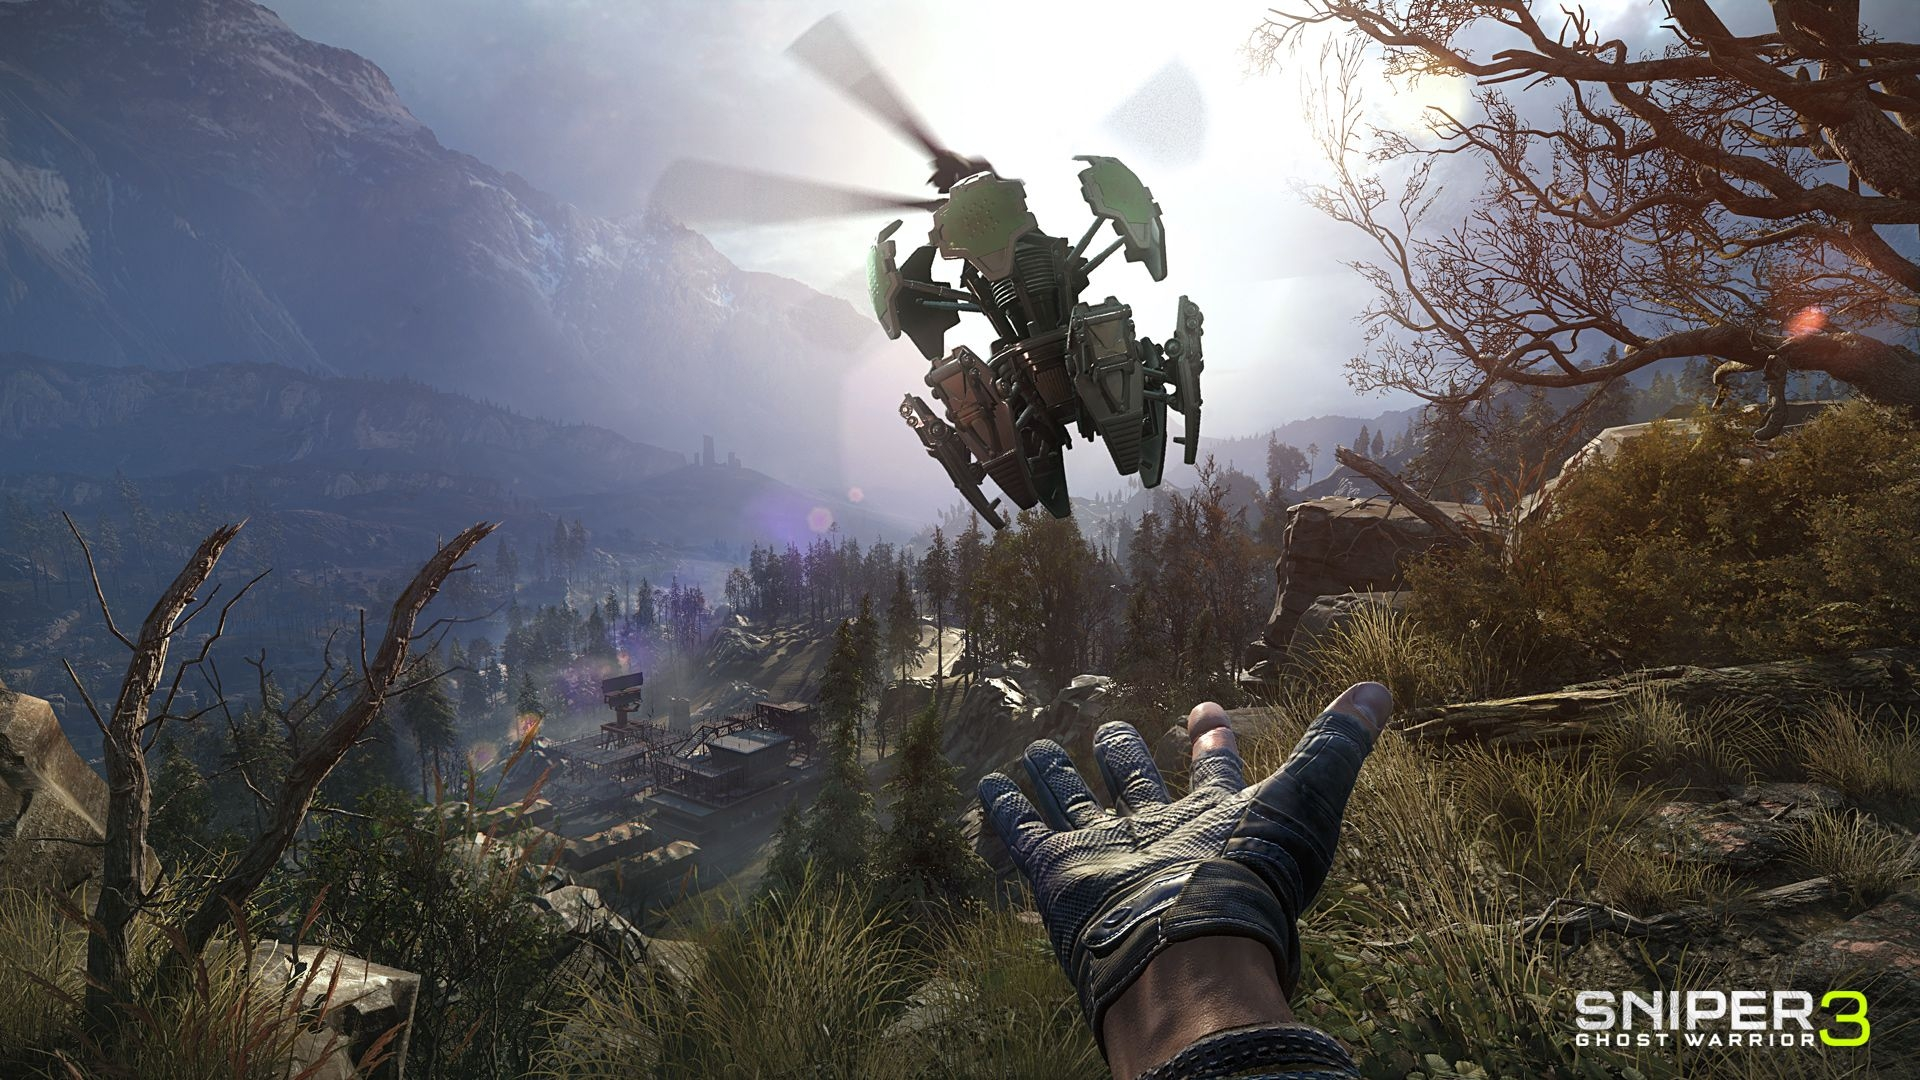 Sniper Ghost Warrior 3 Wallpapers Pictures Images